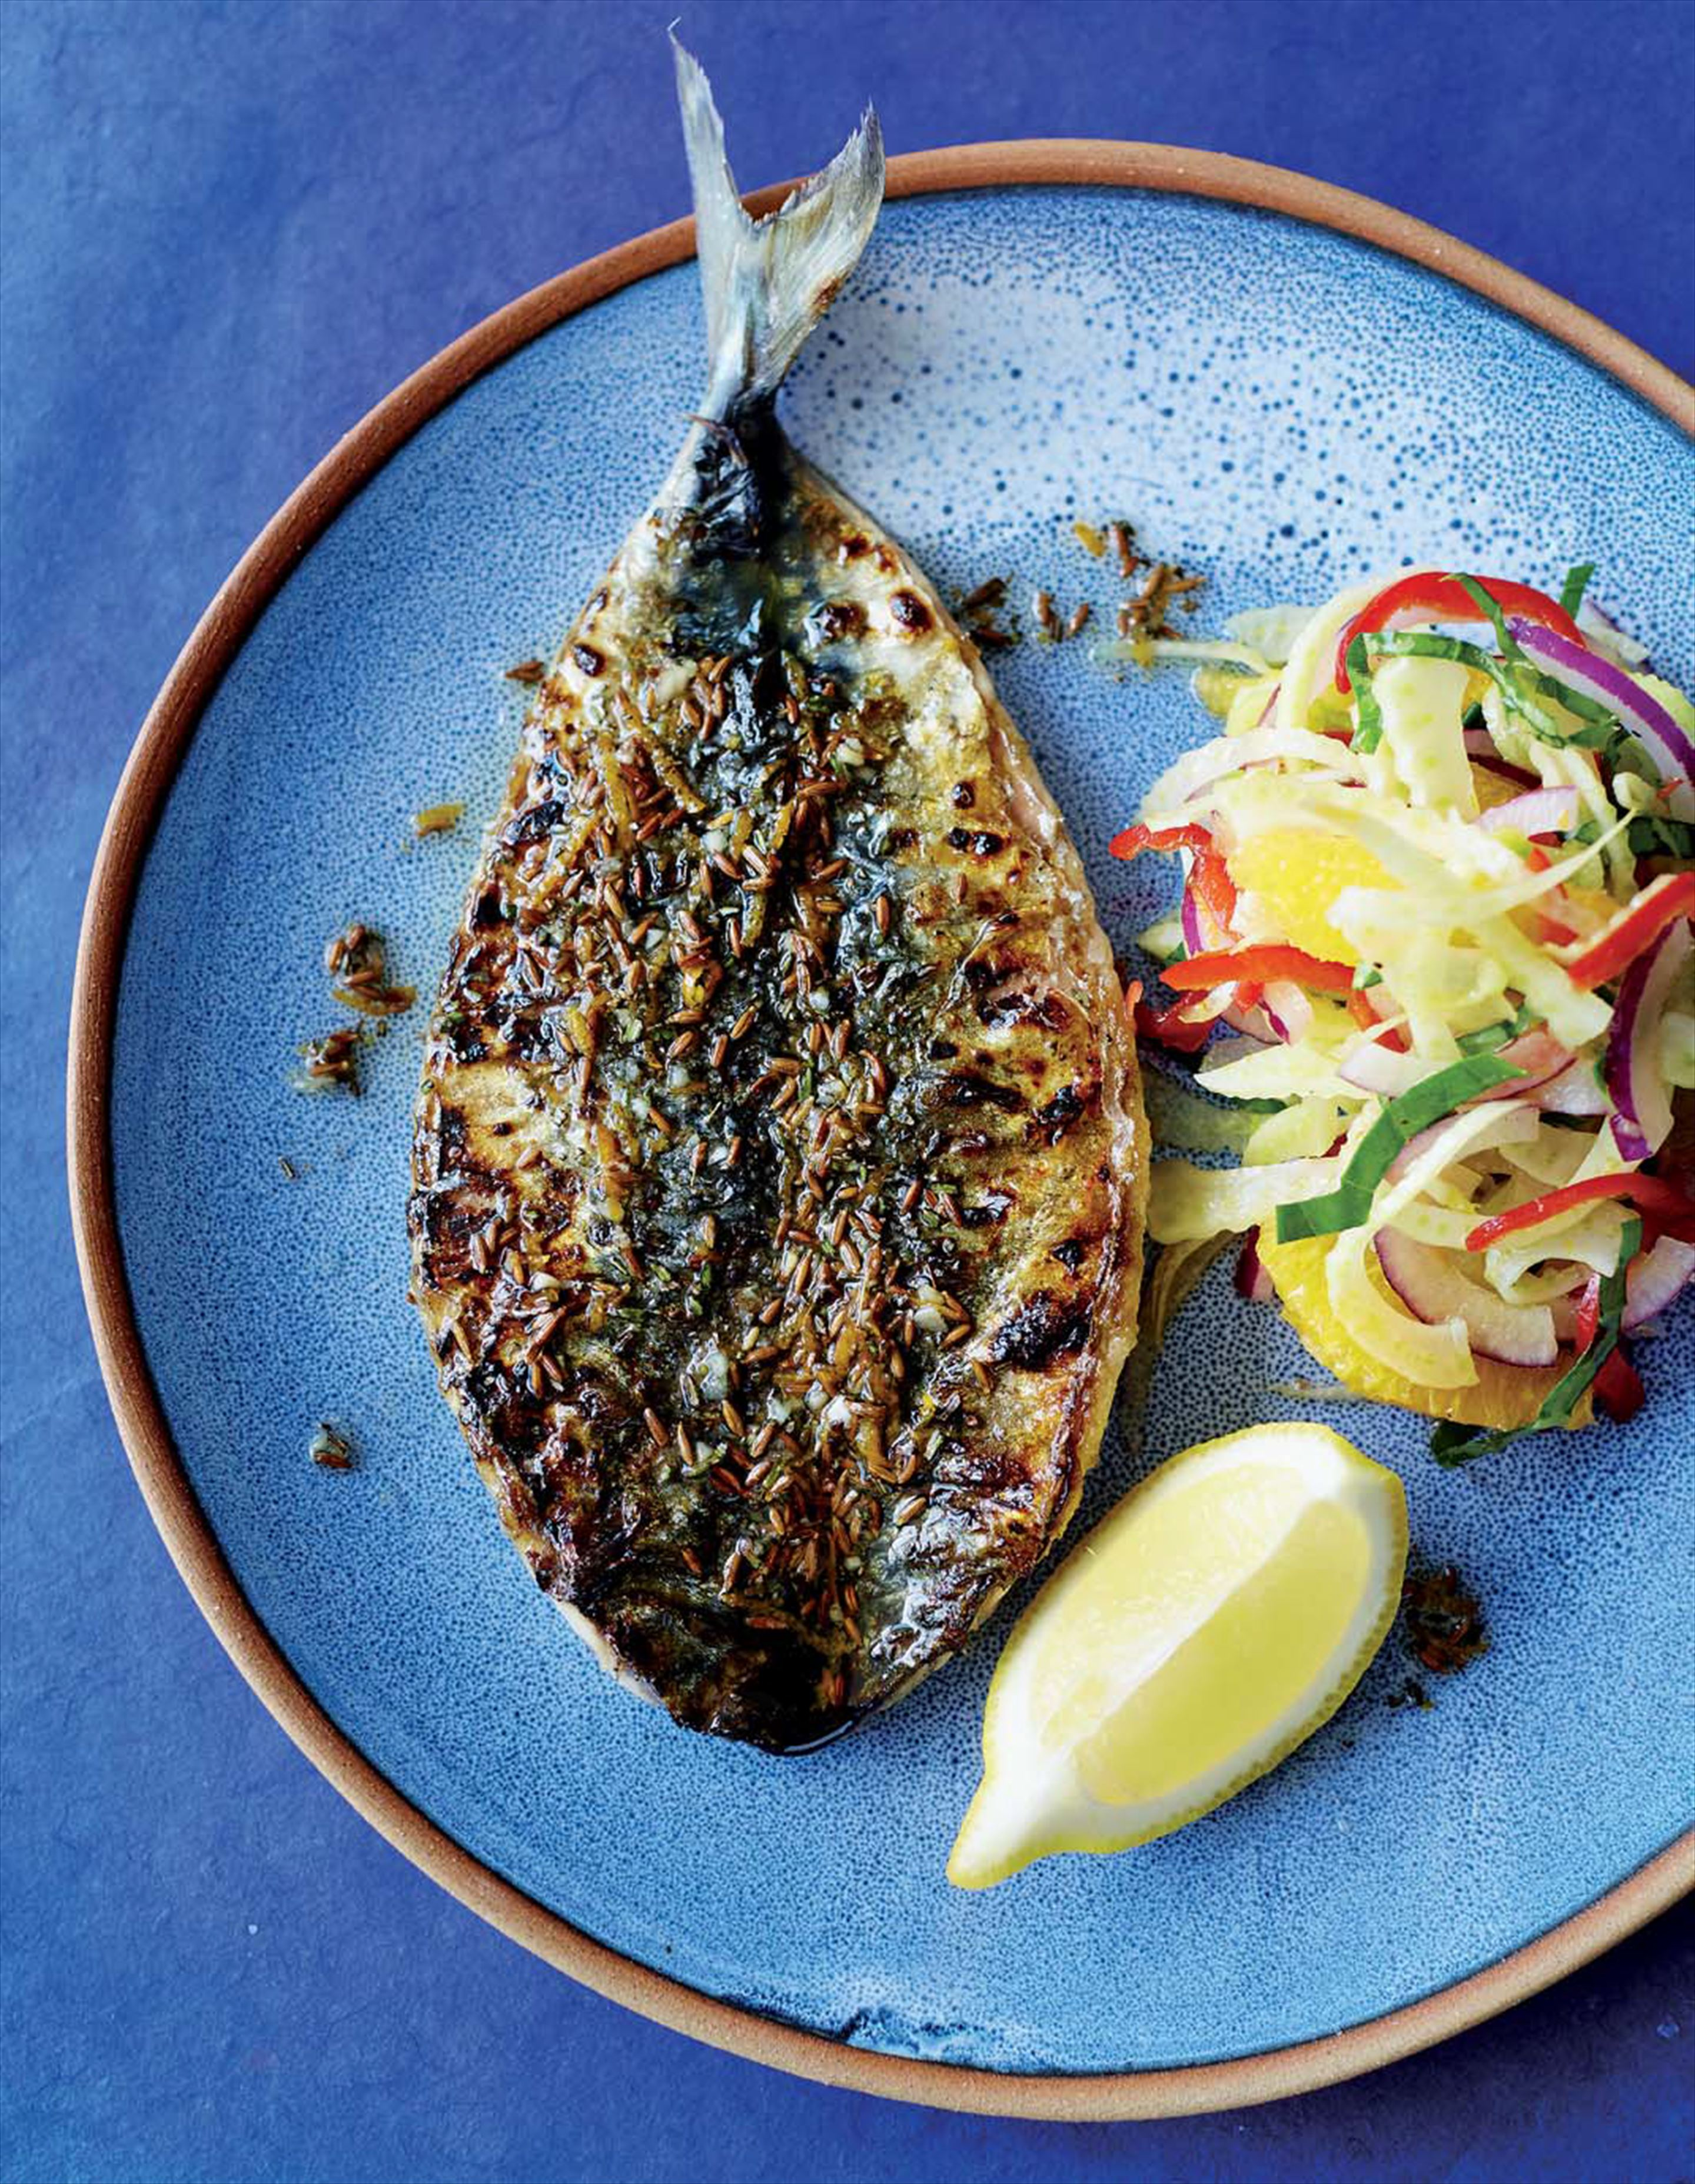 Barbecued mackerel with fennel, red onion and orange salad